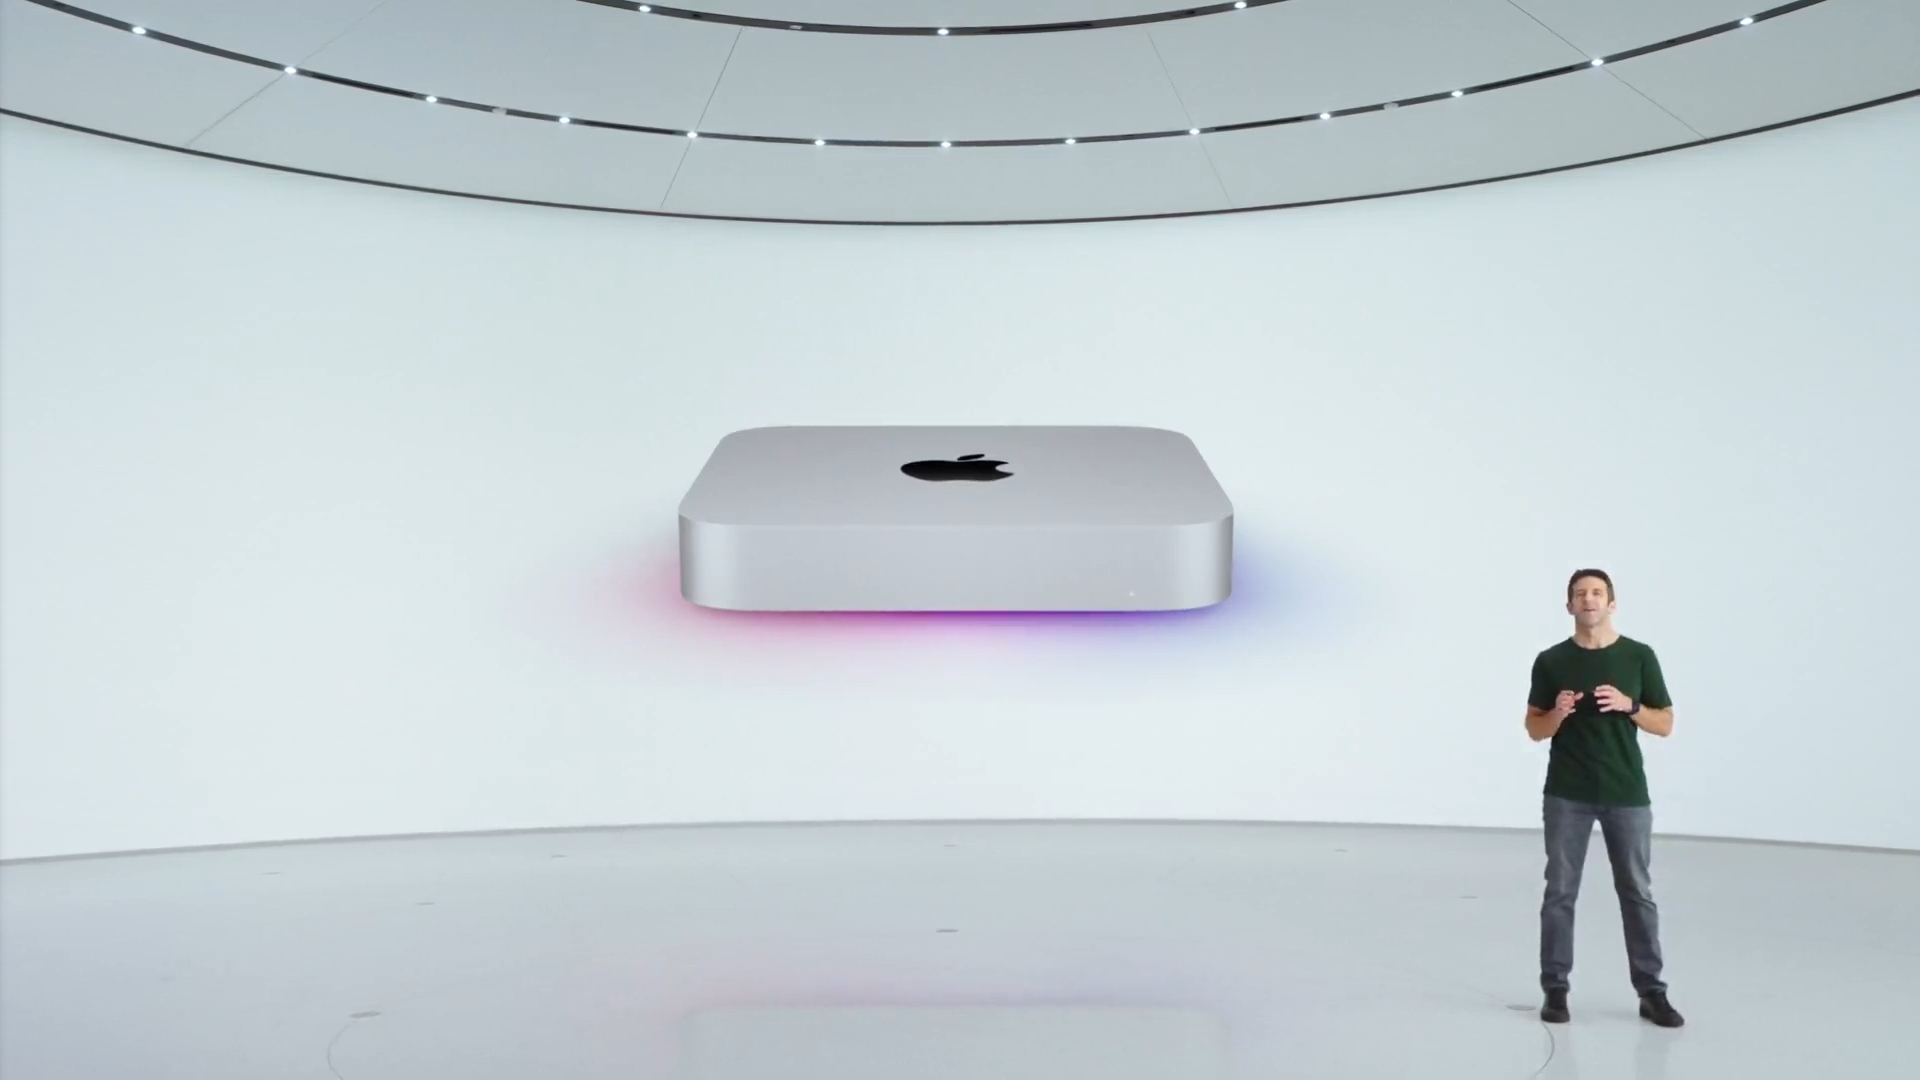 New Mac mini (2020) release date, price and specs: everything we know thumbnail